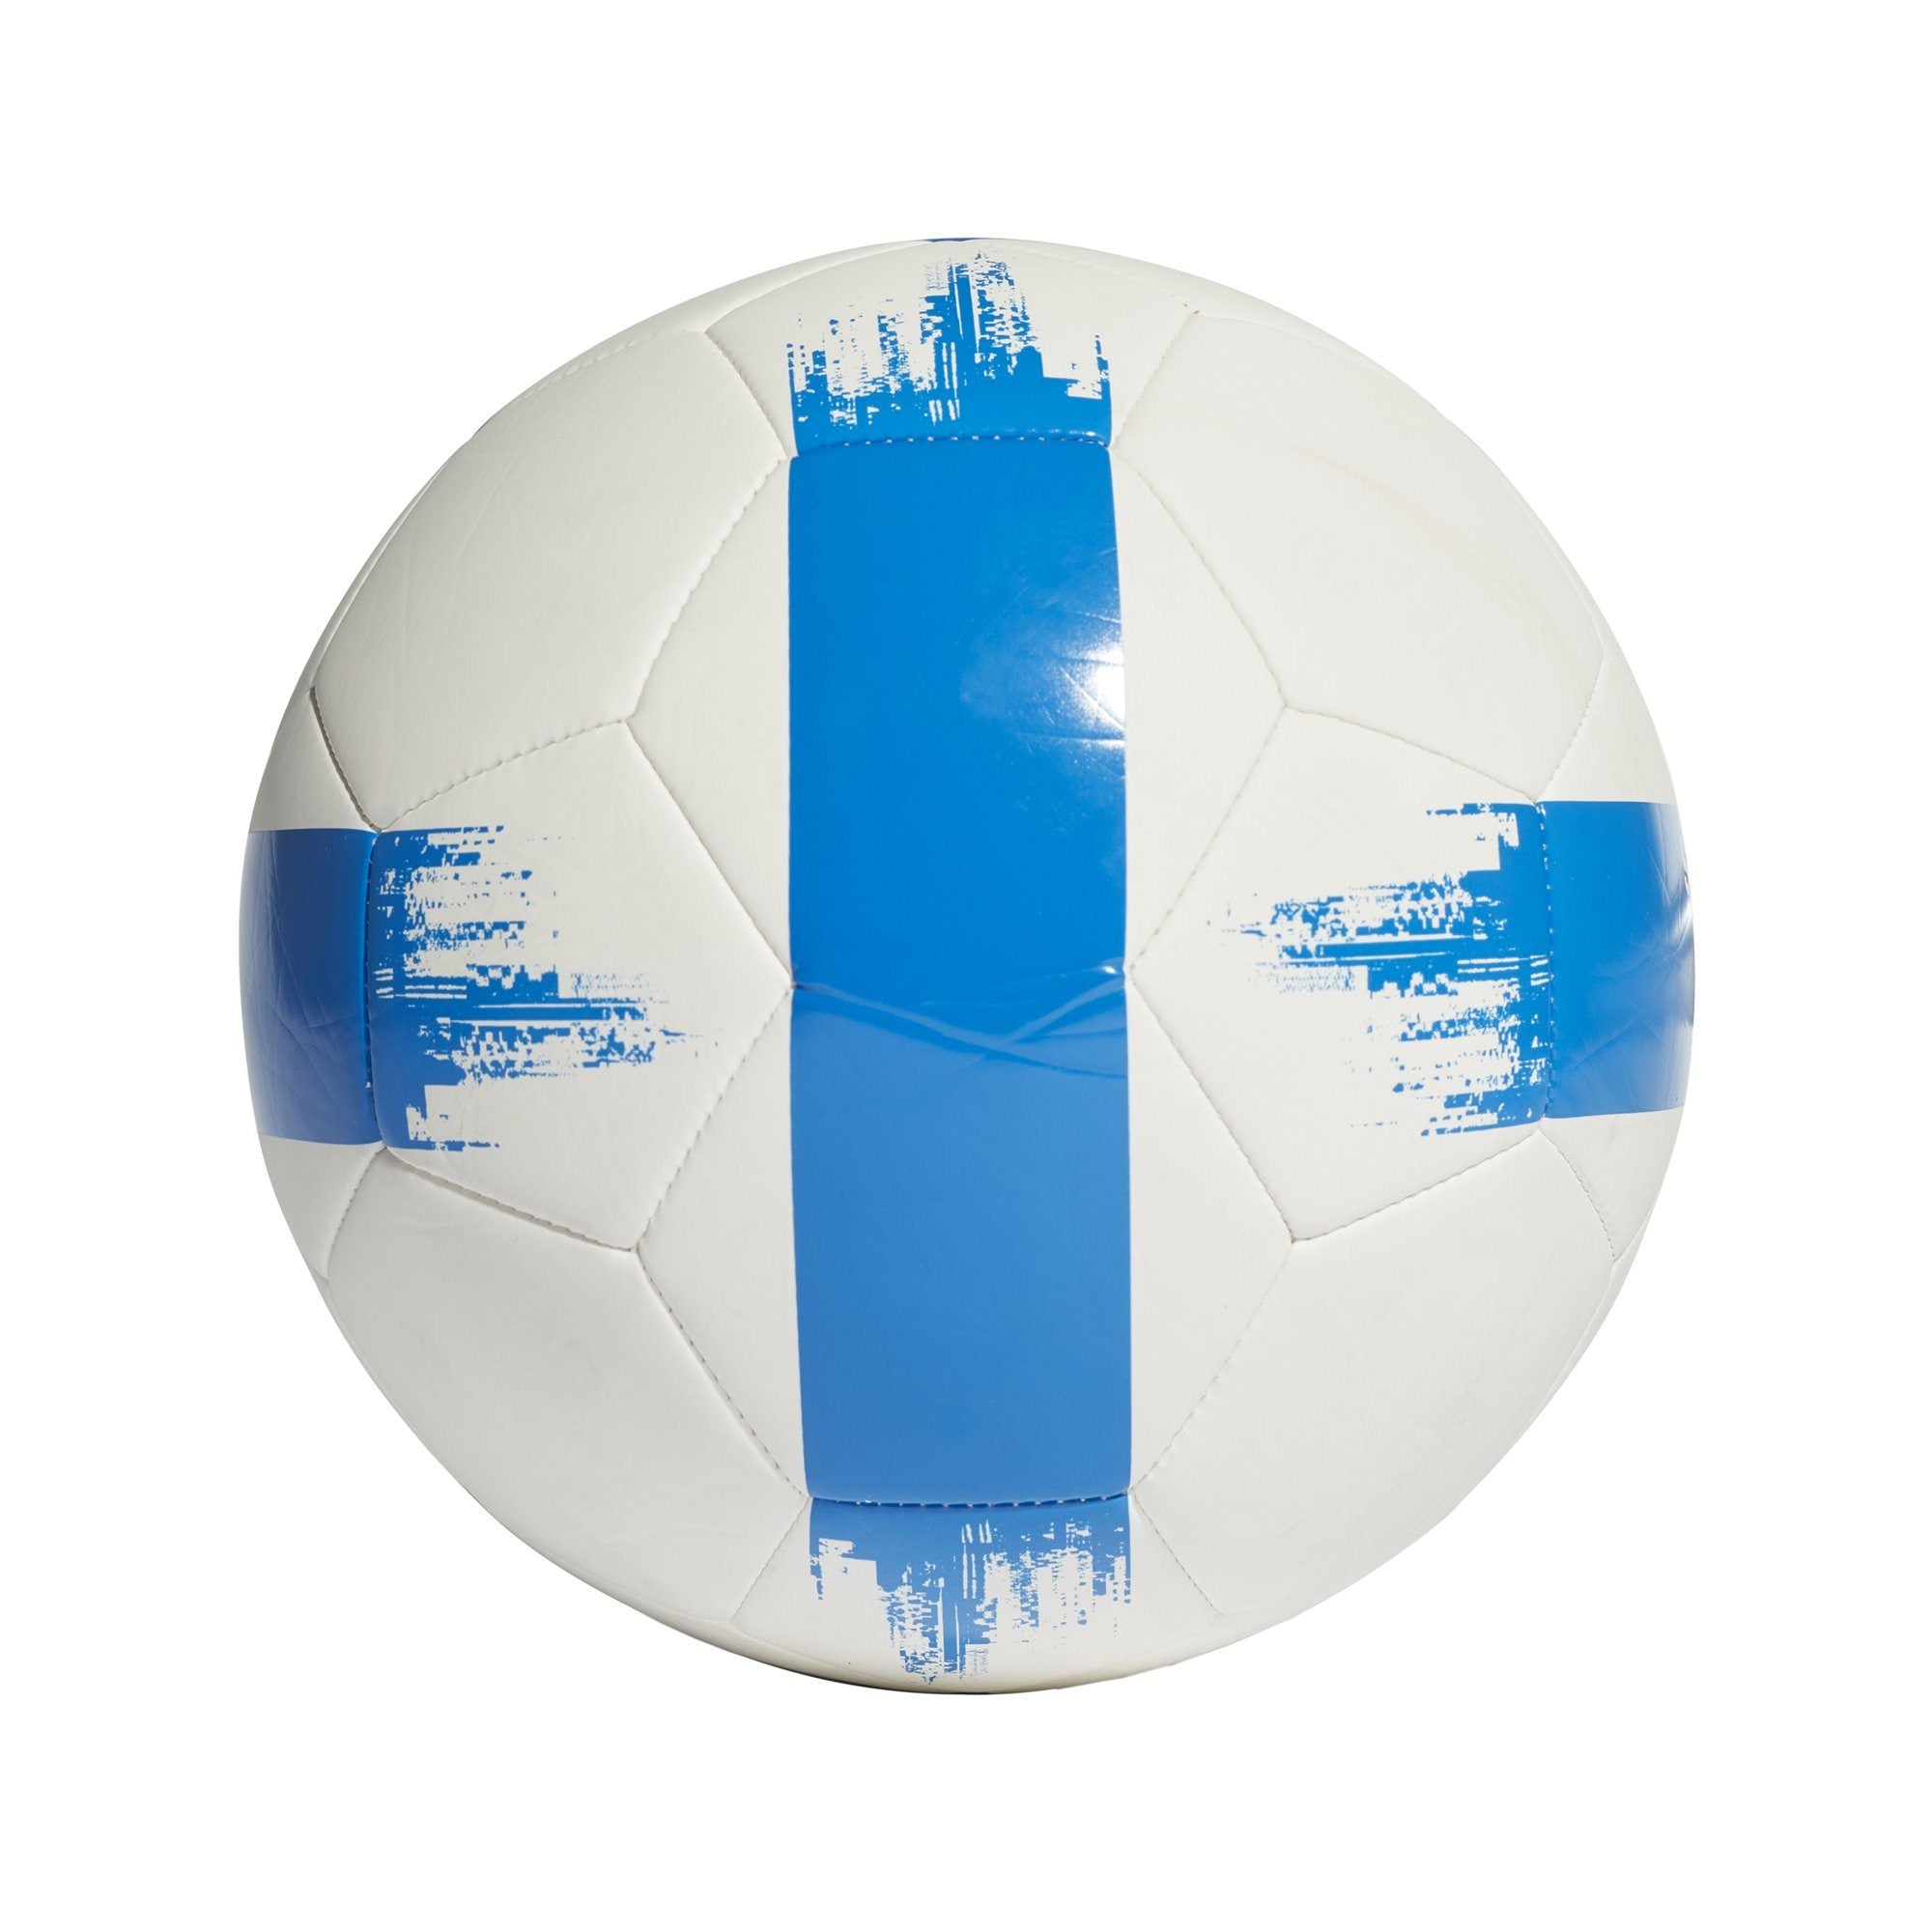 Adidas Mens EPP 2 Ball - white/football blue SP-BALLS-SOCCER Adidas